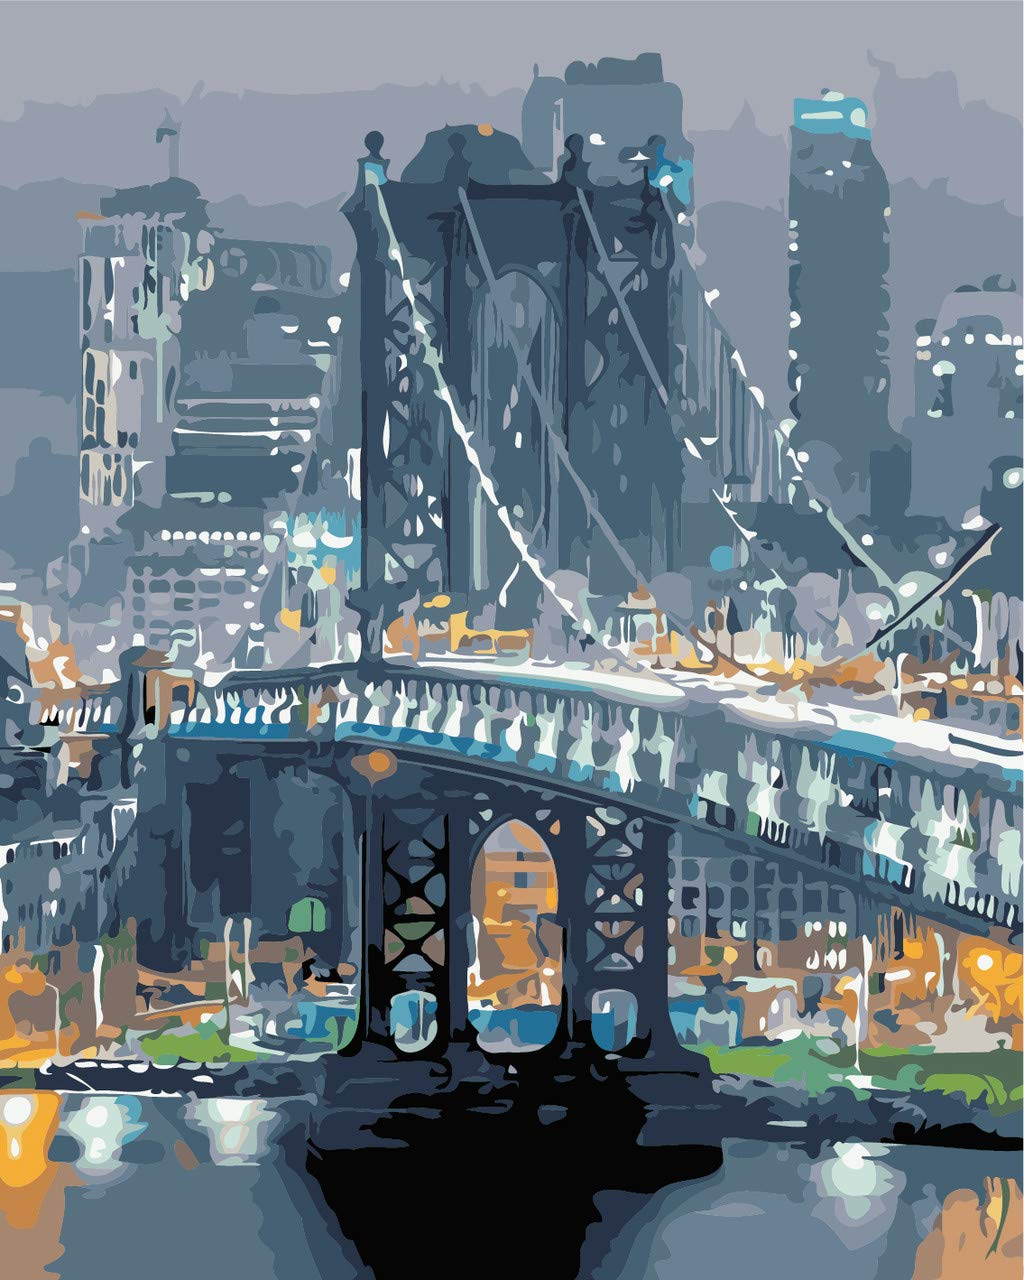 Paint by Numbers kit, Wooden Framed, DIY Oil Painting - The Brooklyn Bridge (16x20 inch.)